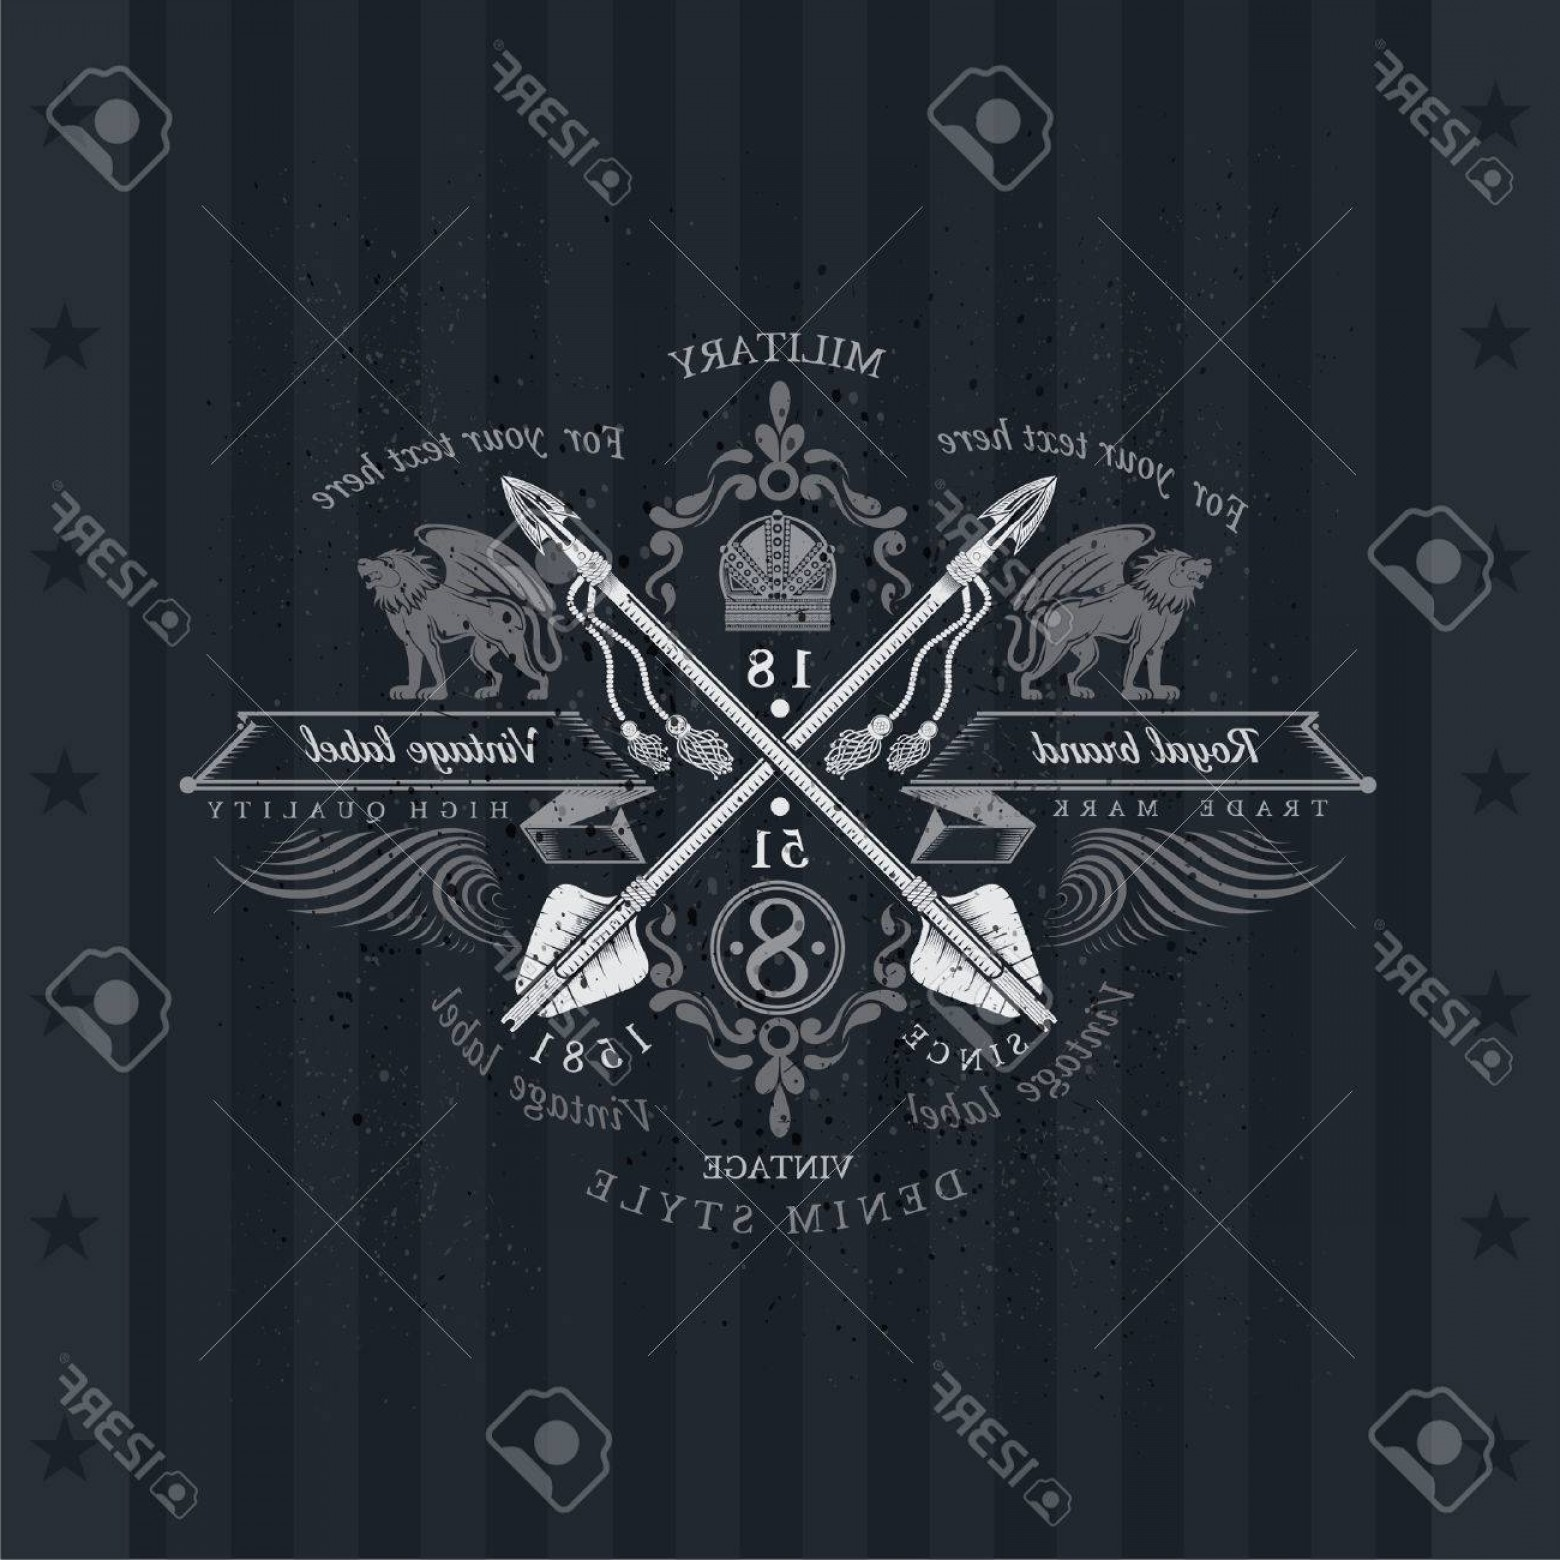 Scotland Heraldic Vector Graphic: Photostock Vector Cross Arrows With Ribbons And Two Lions On Both Sides Military Heraldic Label On Blackboard